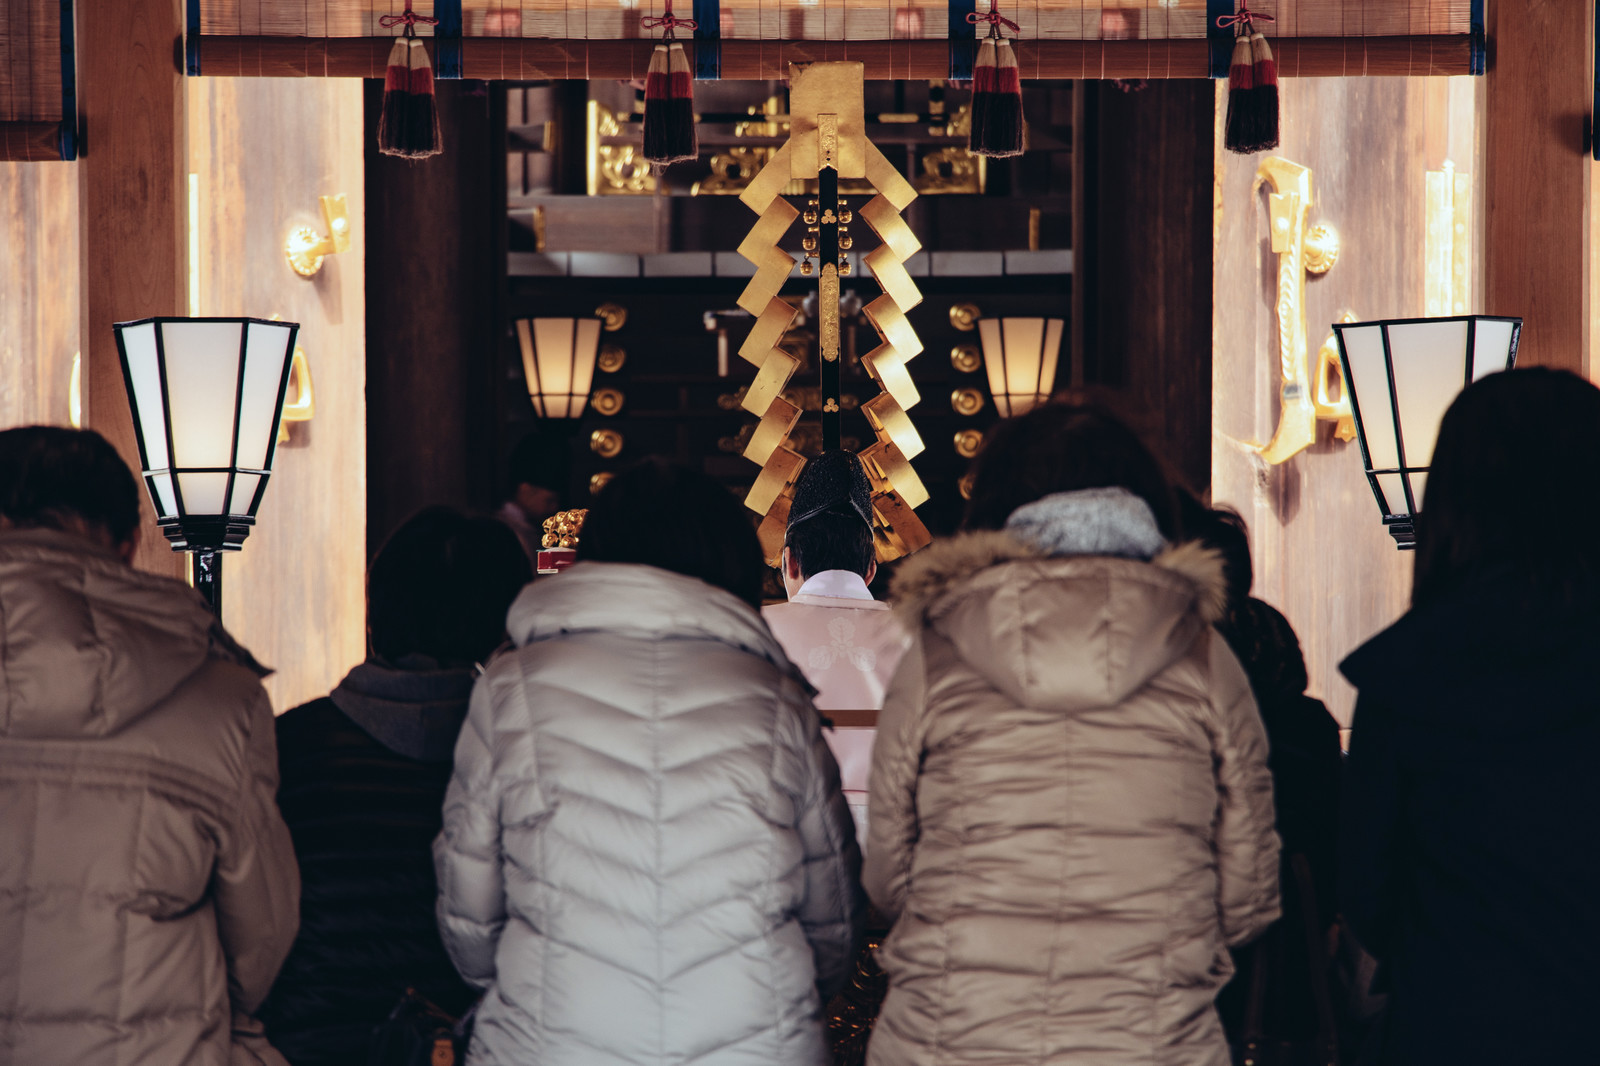 People lining up to pray in the shrine during New Years.